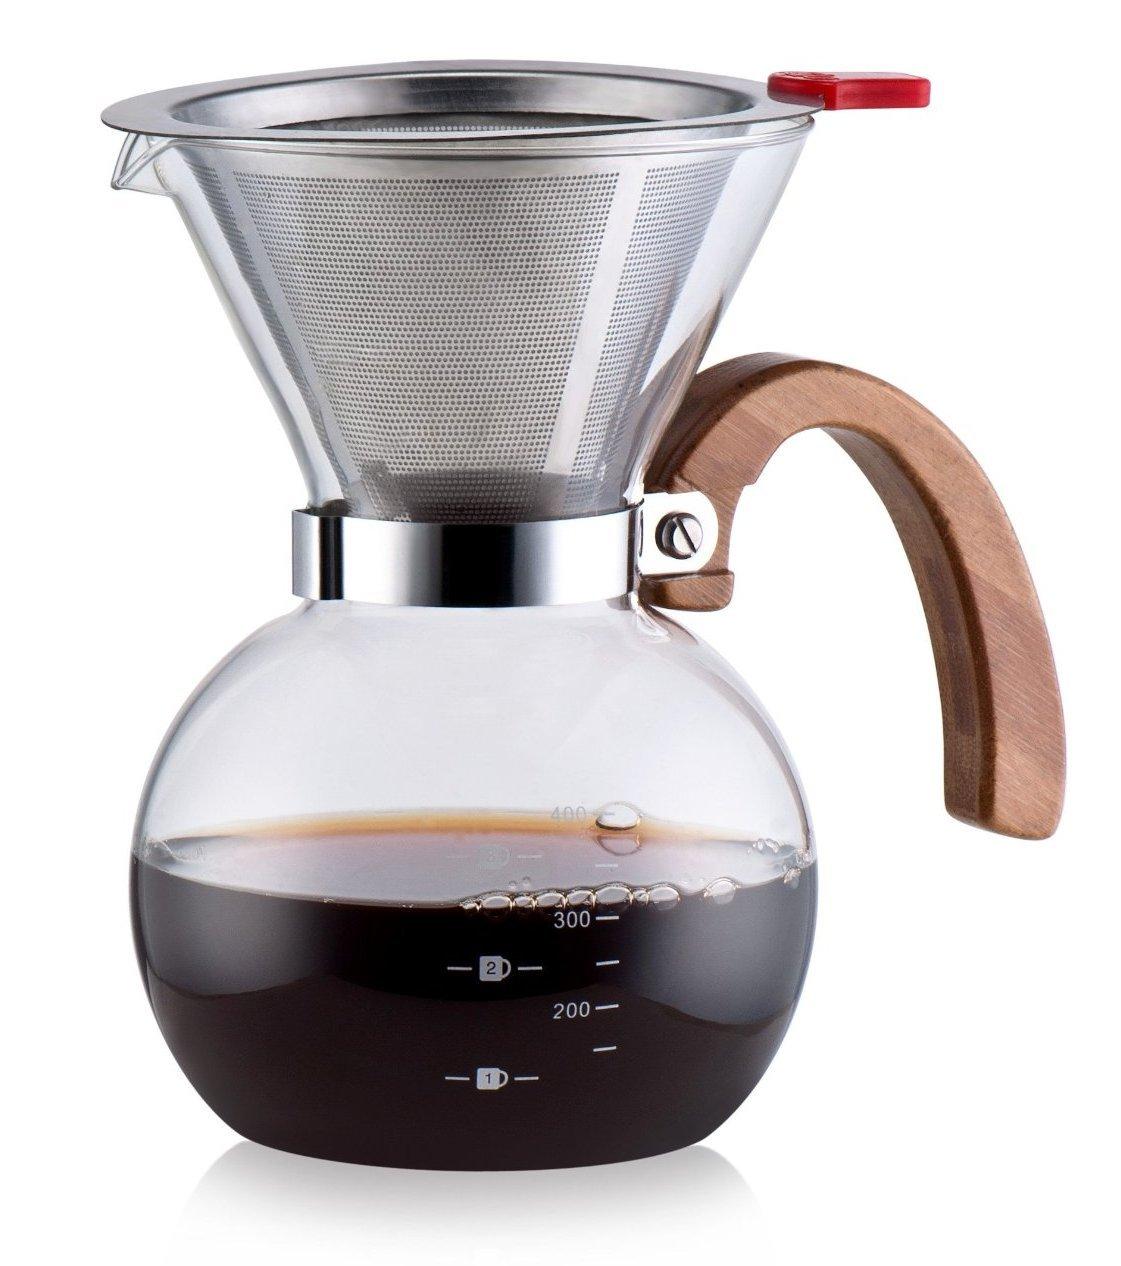 Diguo Pour Over Coffeemaker Glass Coffee Maker Drip Pot with Stainless Steel Permanent Filter, Bamboo Handle, 1-4 Cups